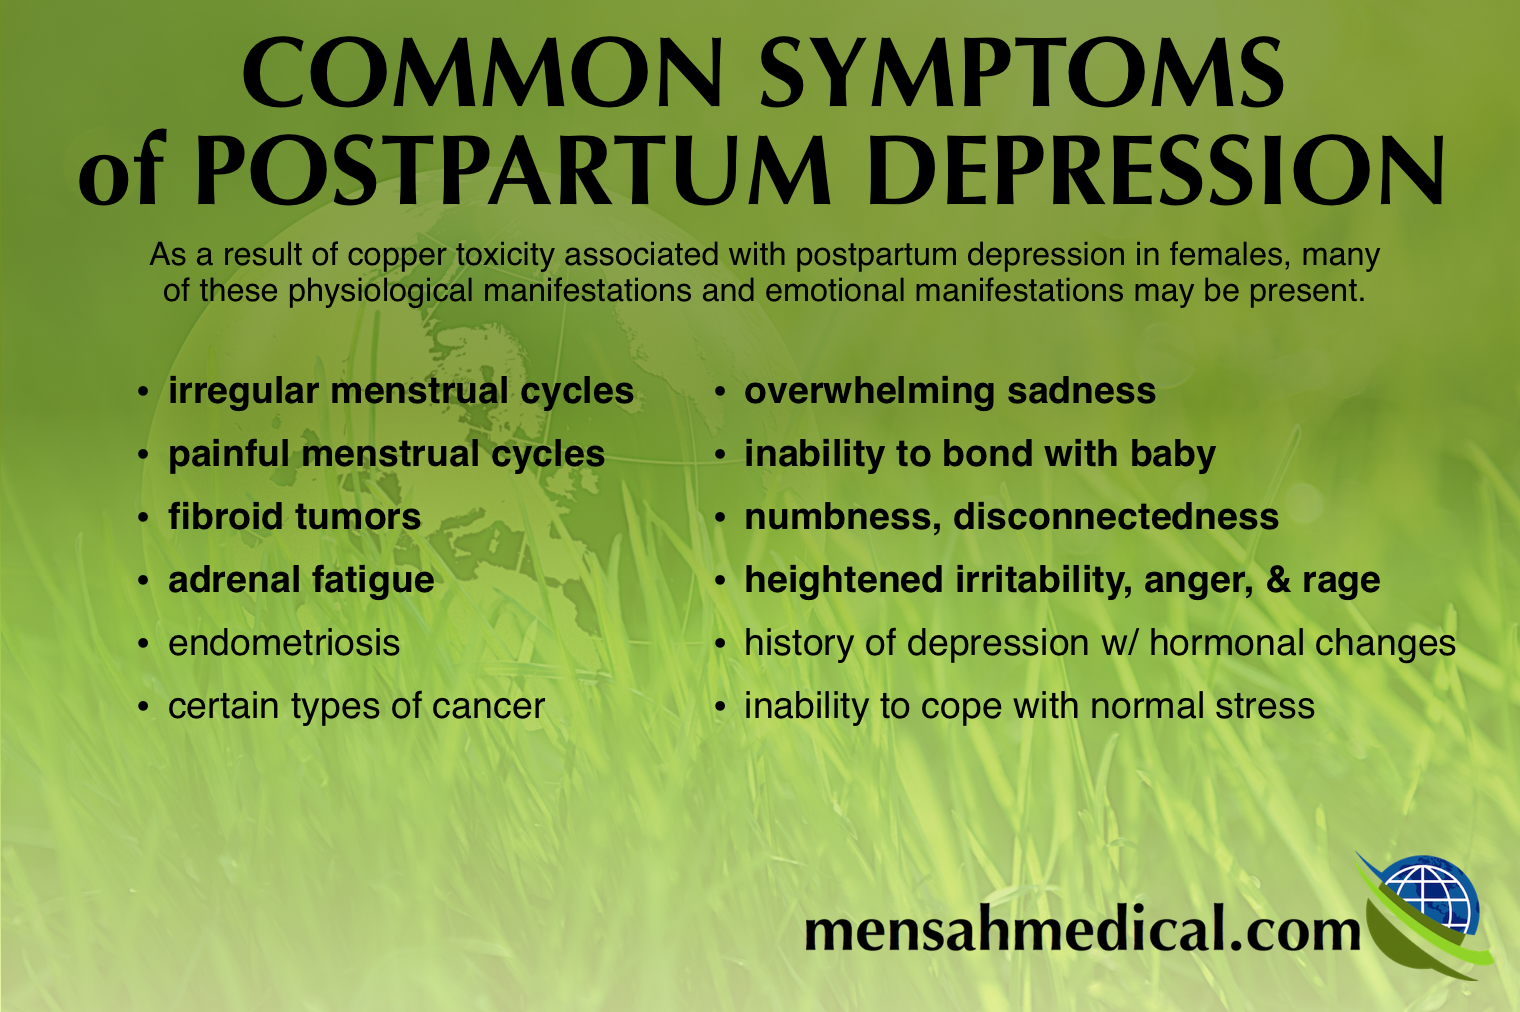 Postpartum Depression Biochemical Imbalance  Mensah. Ethnicity Signs Of Stroke. Match Signs Of Stroke. Old Signs. Lymphoma Signs. Ral Uwsa Signs Of Stroke. Somatic Signs Of Stroke. Obstruction Signs. March 30 Signs Of Stroke